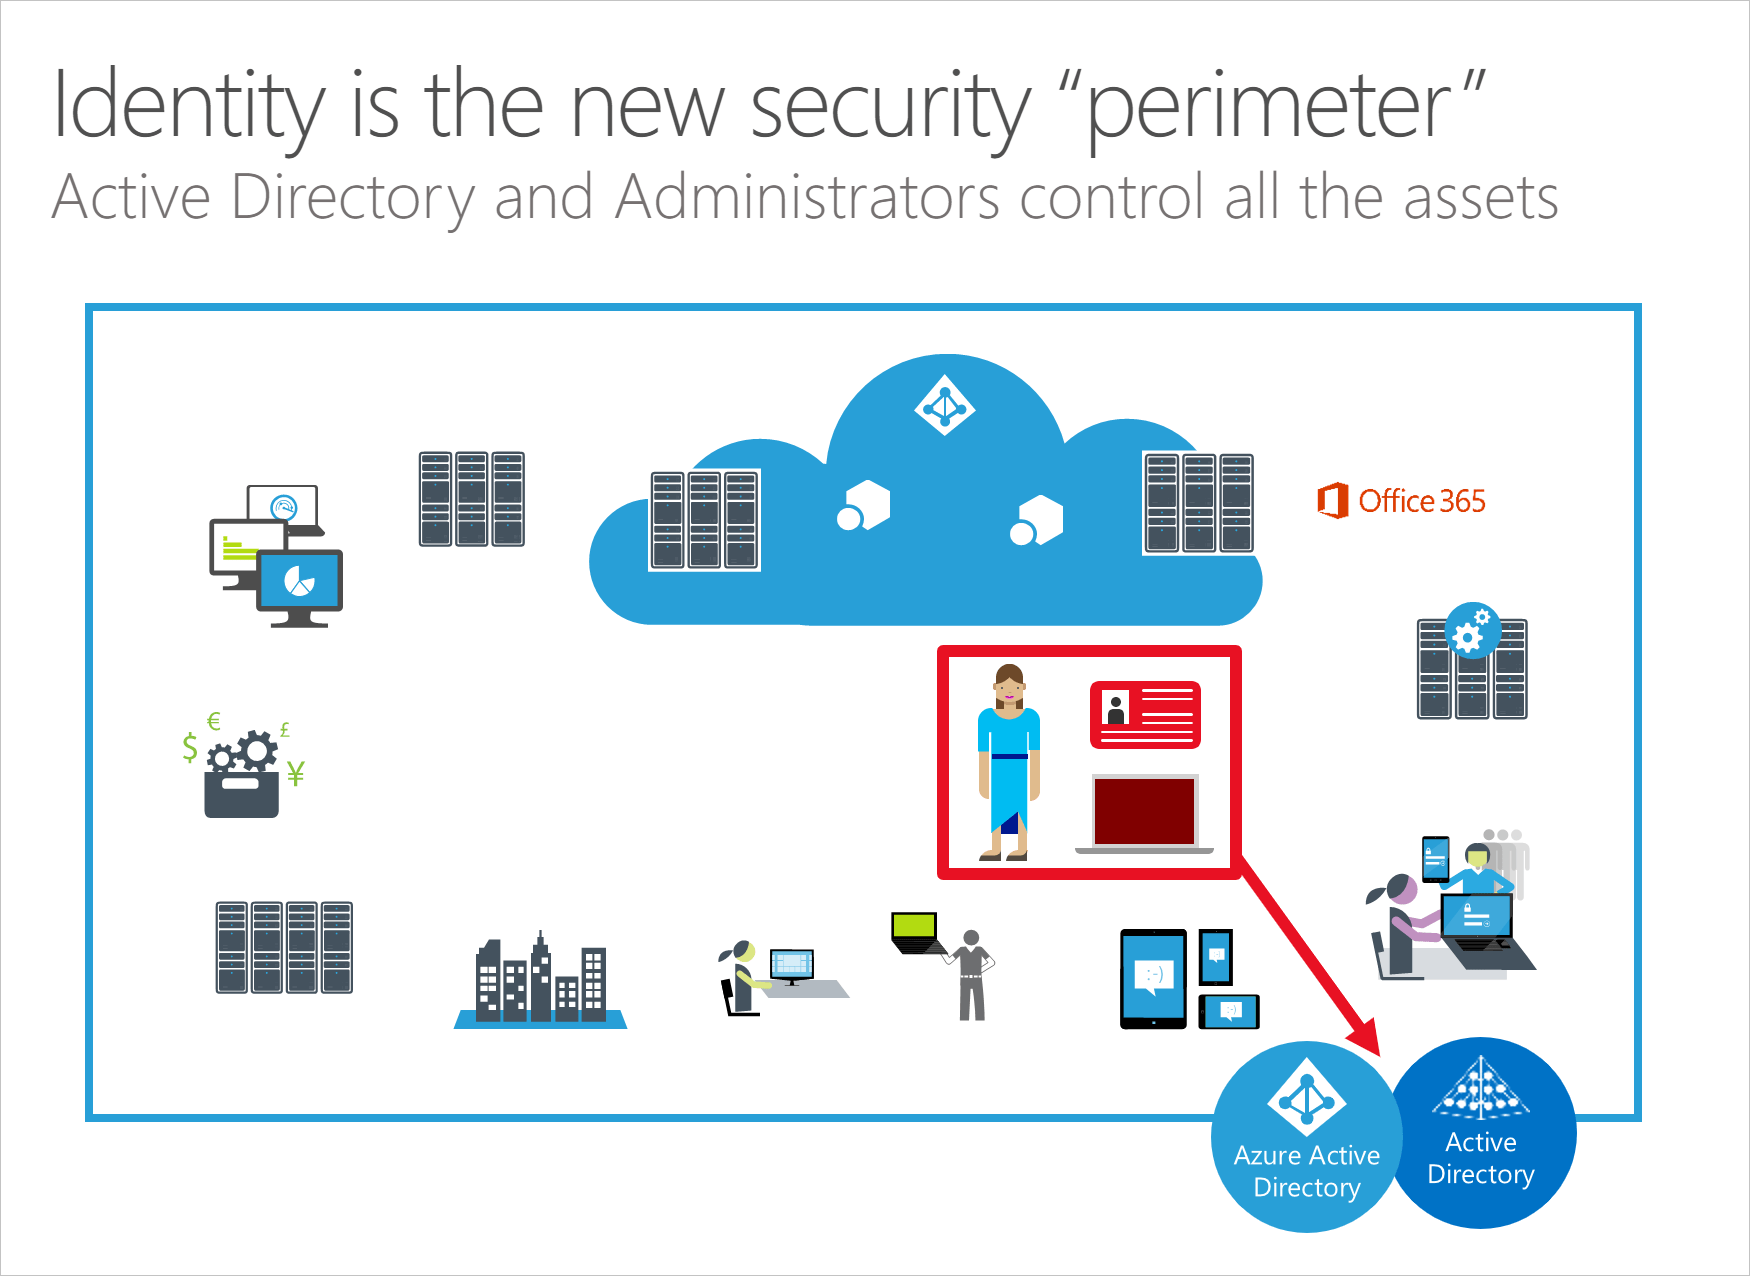 Identity is the new security perimeter